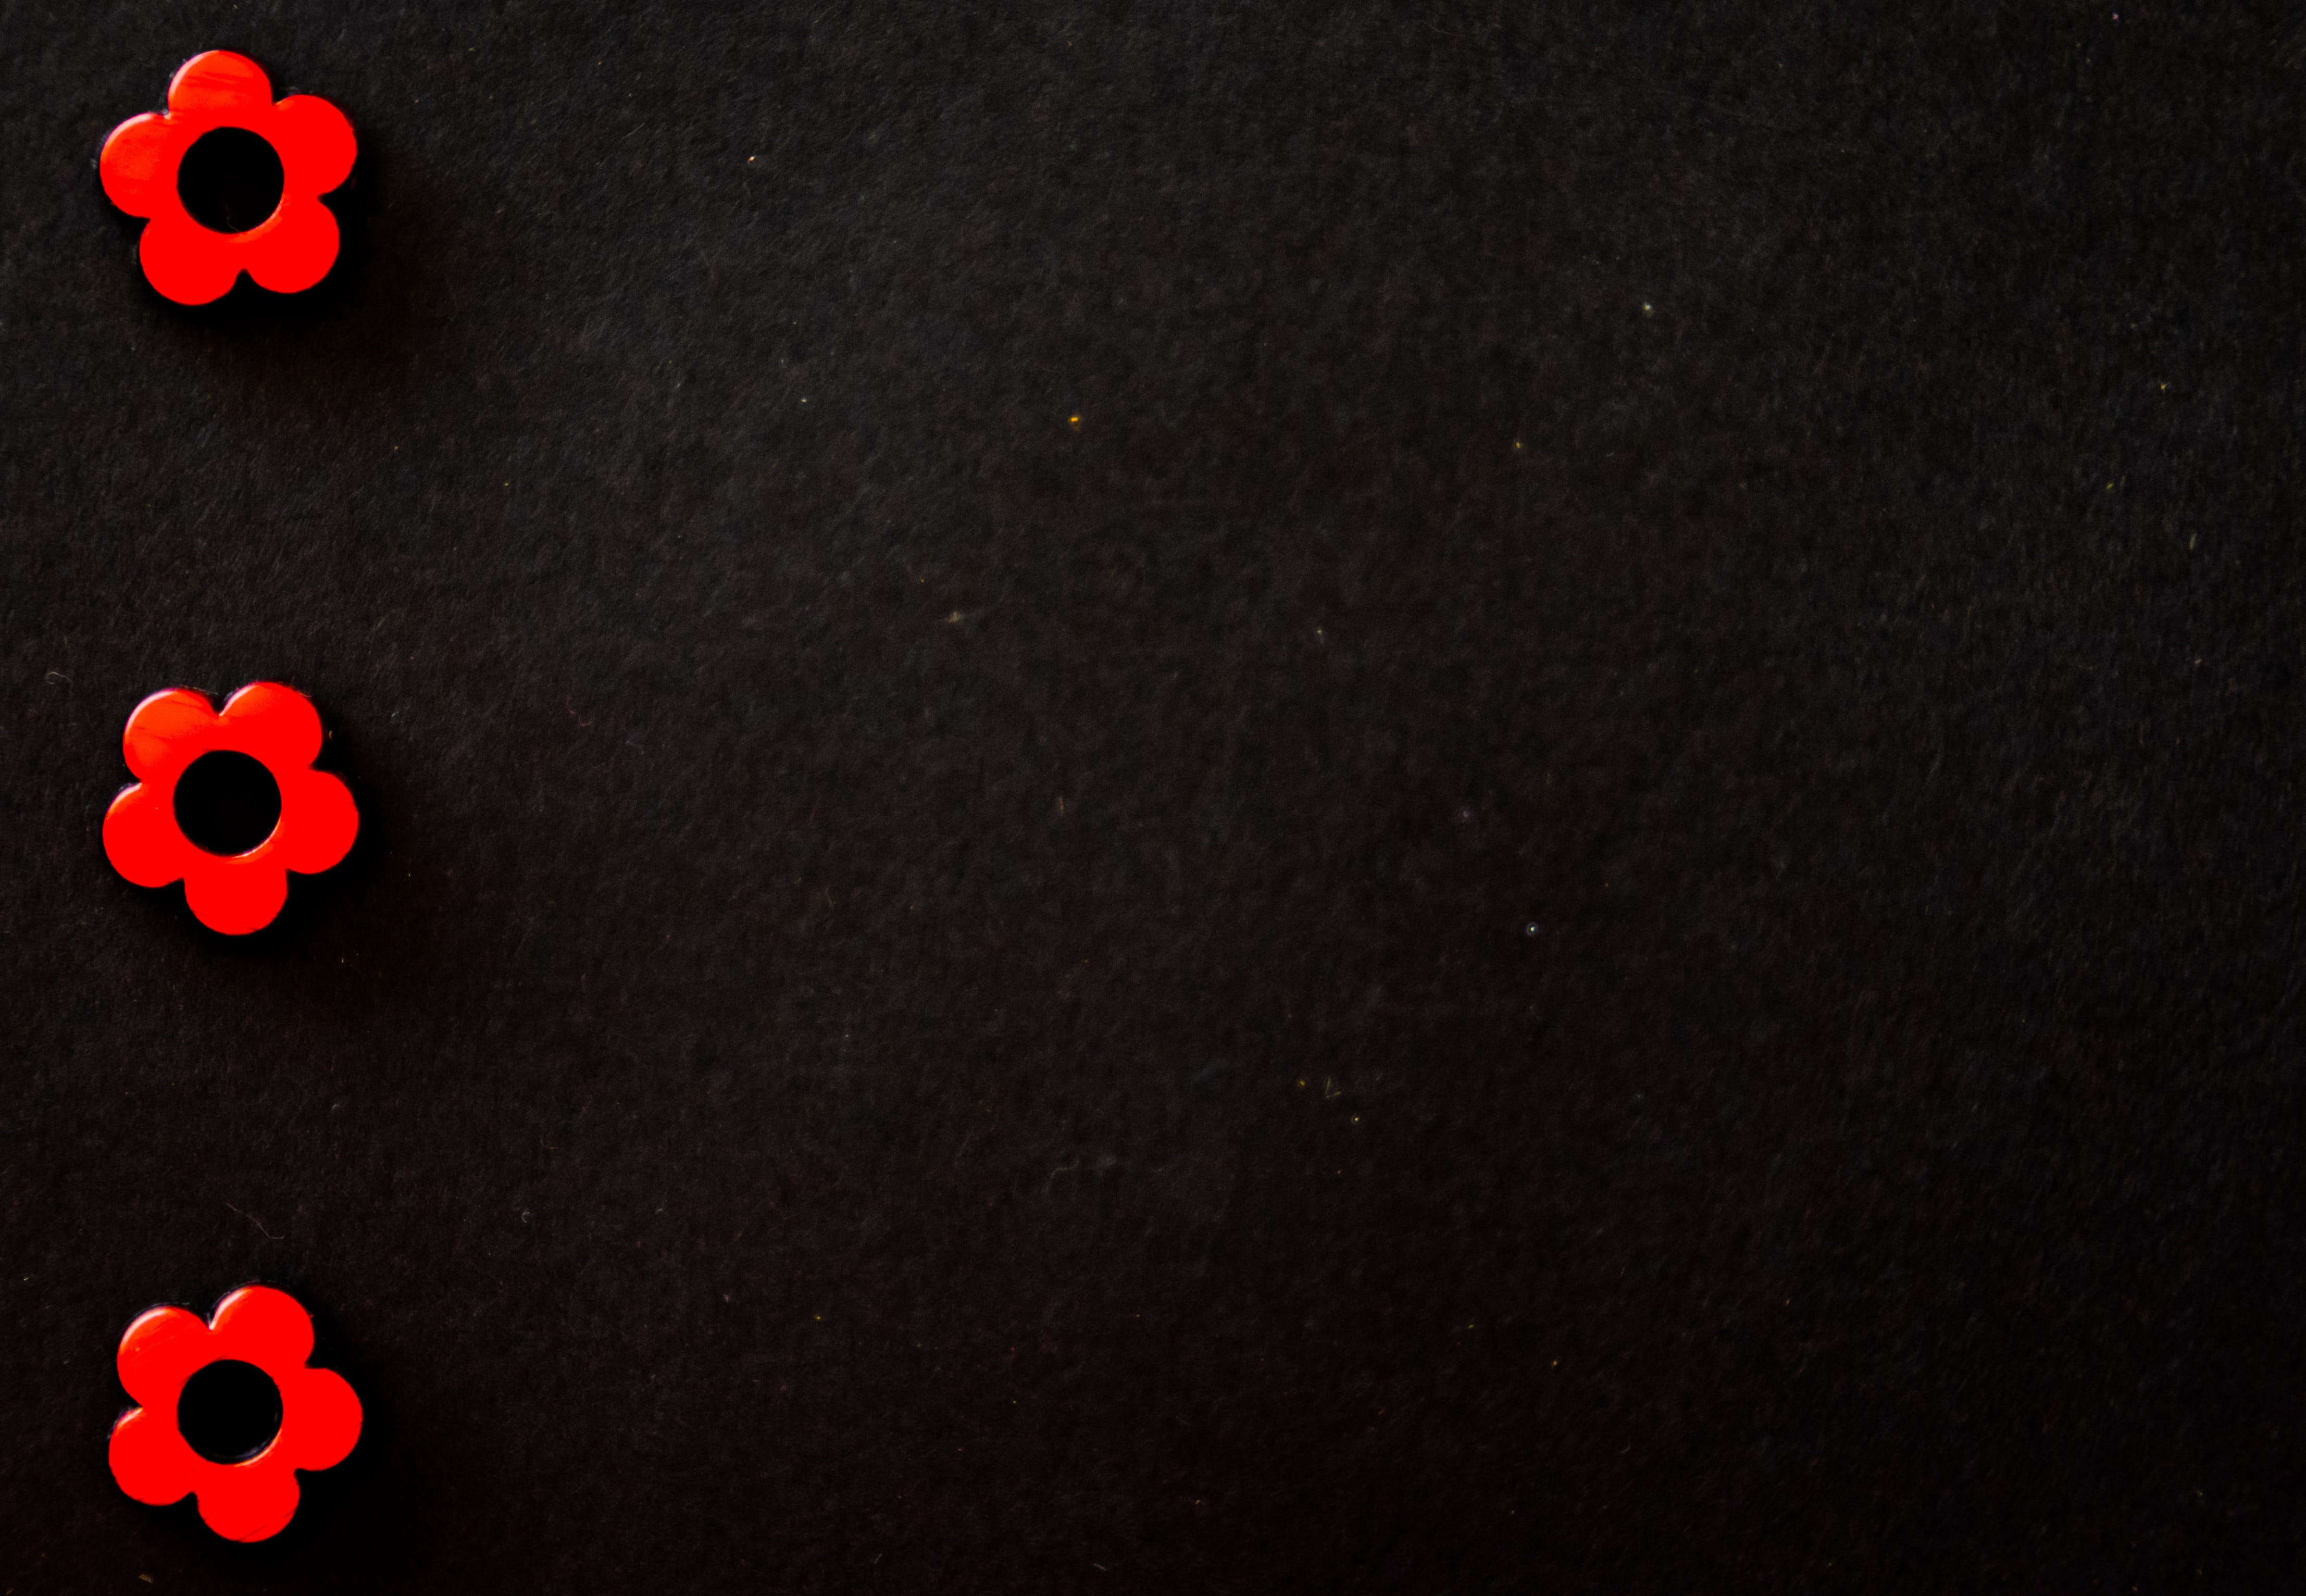 Three Red Flower Beads on Black Surface